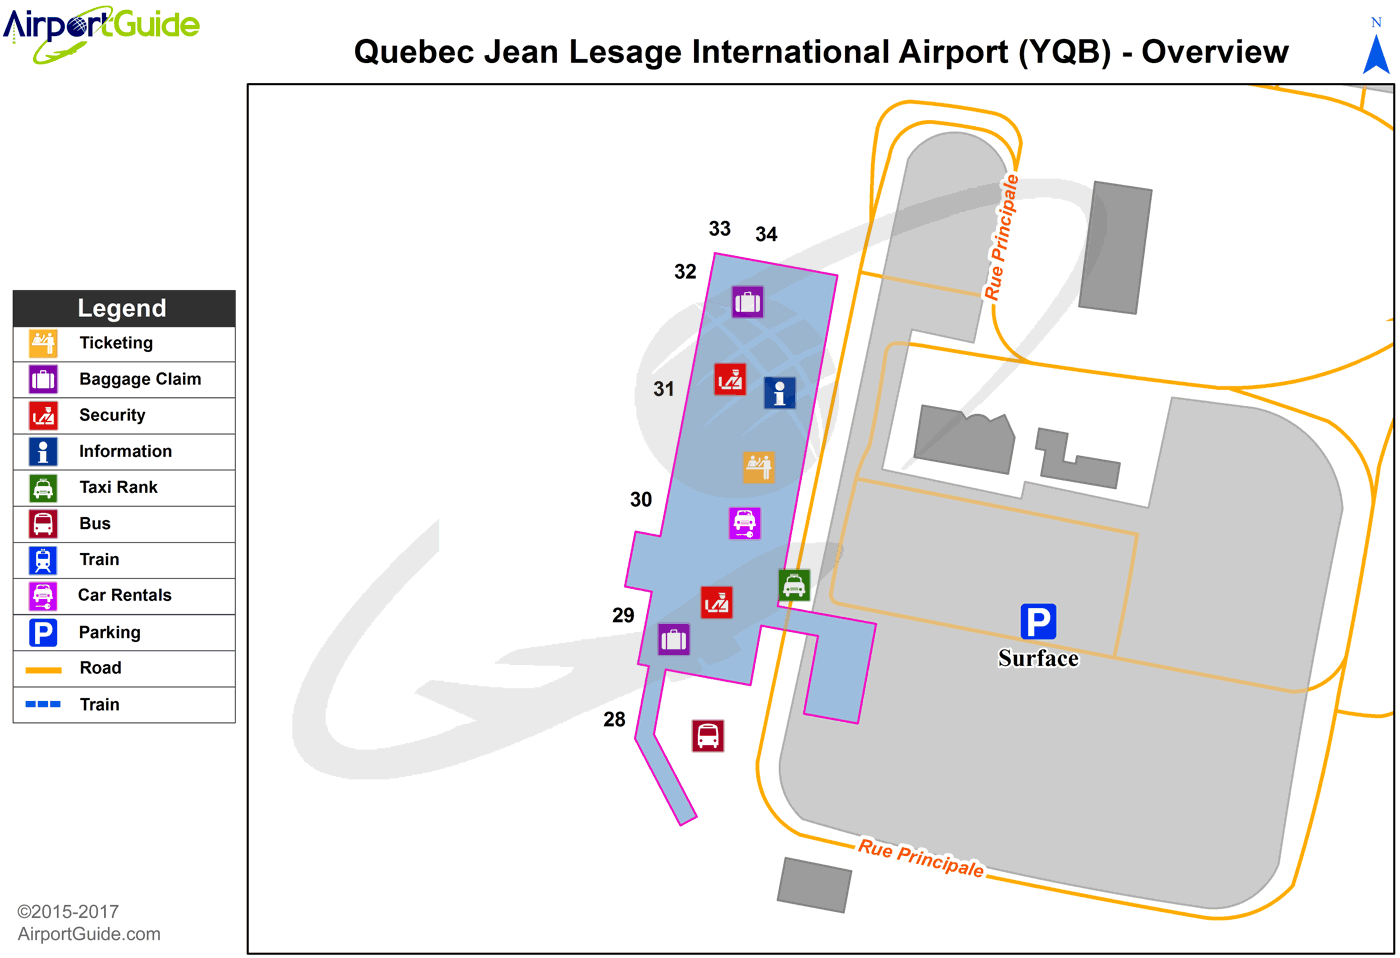 Quebec - Quebec/Jean Lesage International (YQB) Airport Terminal Map - Overview